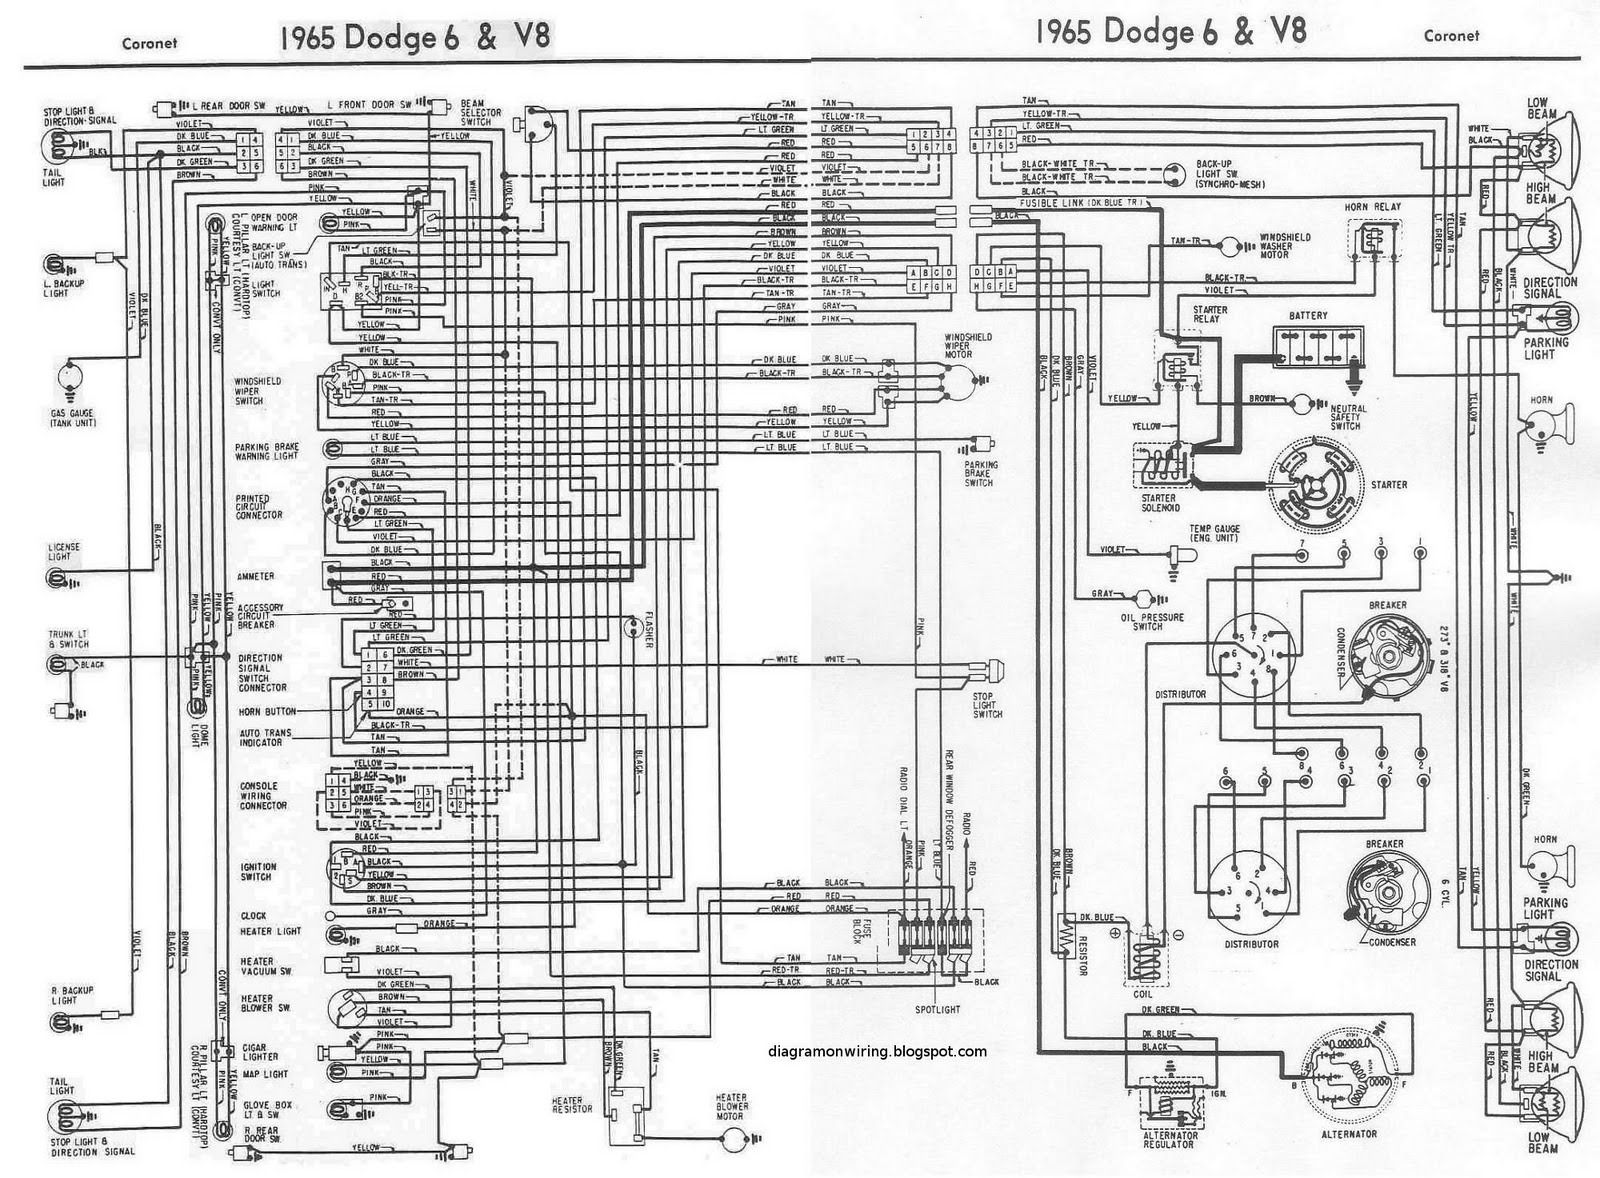 1968 roadrunner firewall wiring diagram wiring diagram 68 Mustang Firing Order 1968 roadrunner firewall wiring diagram wiring diagram1968 dodge charger firewall wiring harness diagram qvr1968 roadrunner firewall